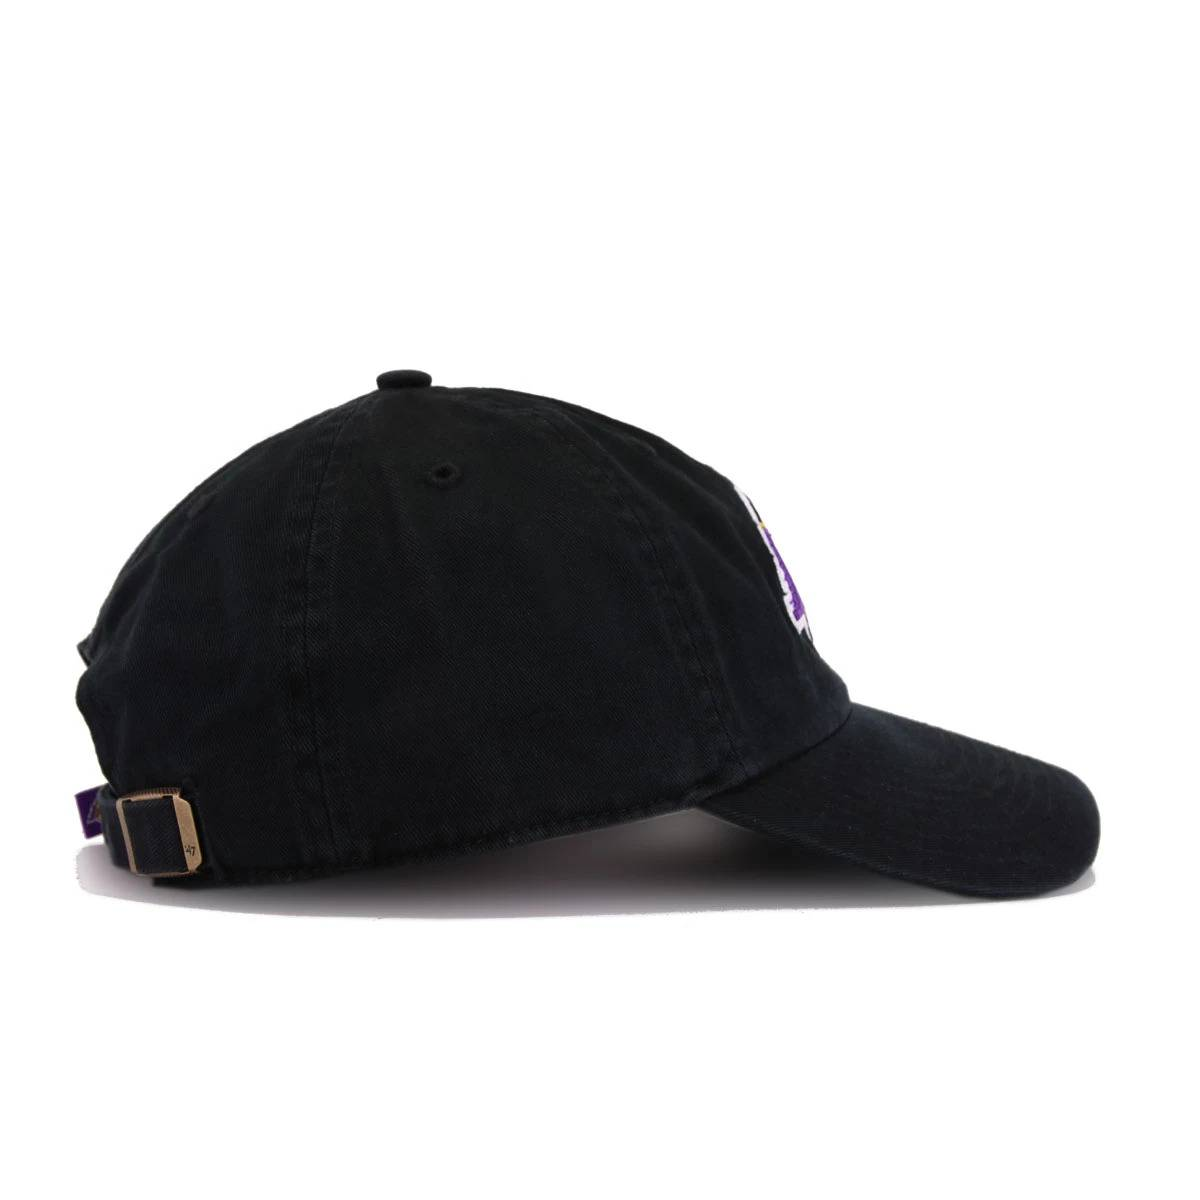 15ad7b8a Los Angeles Lakers Black 47 Brand Clean Up Dad Hat